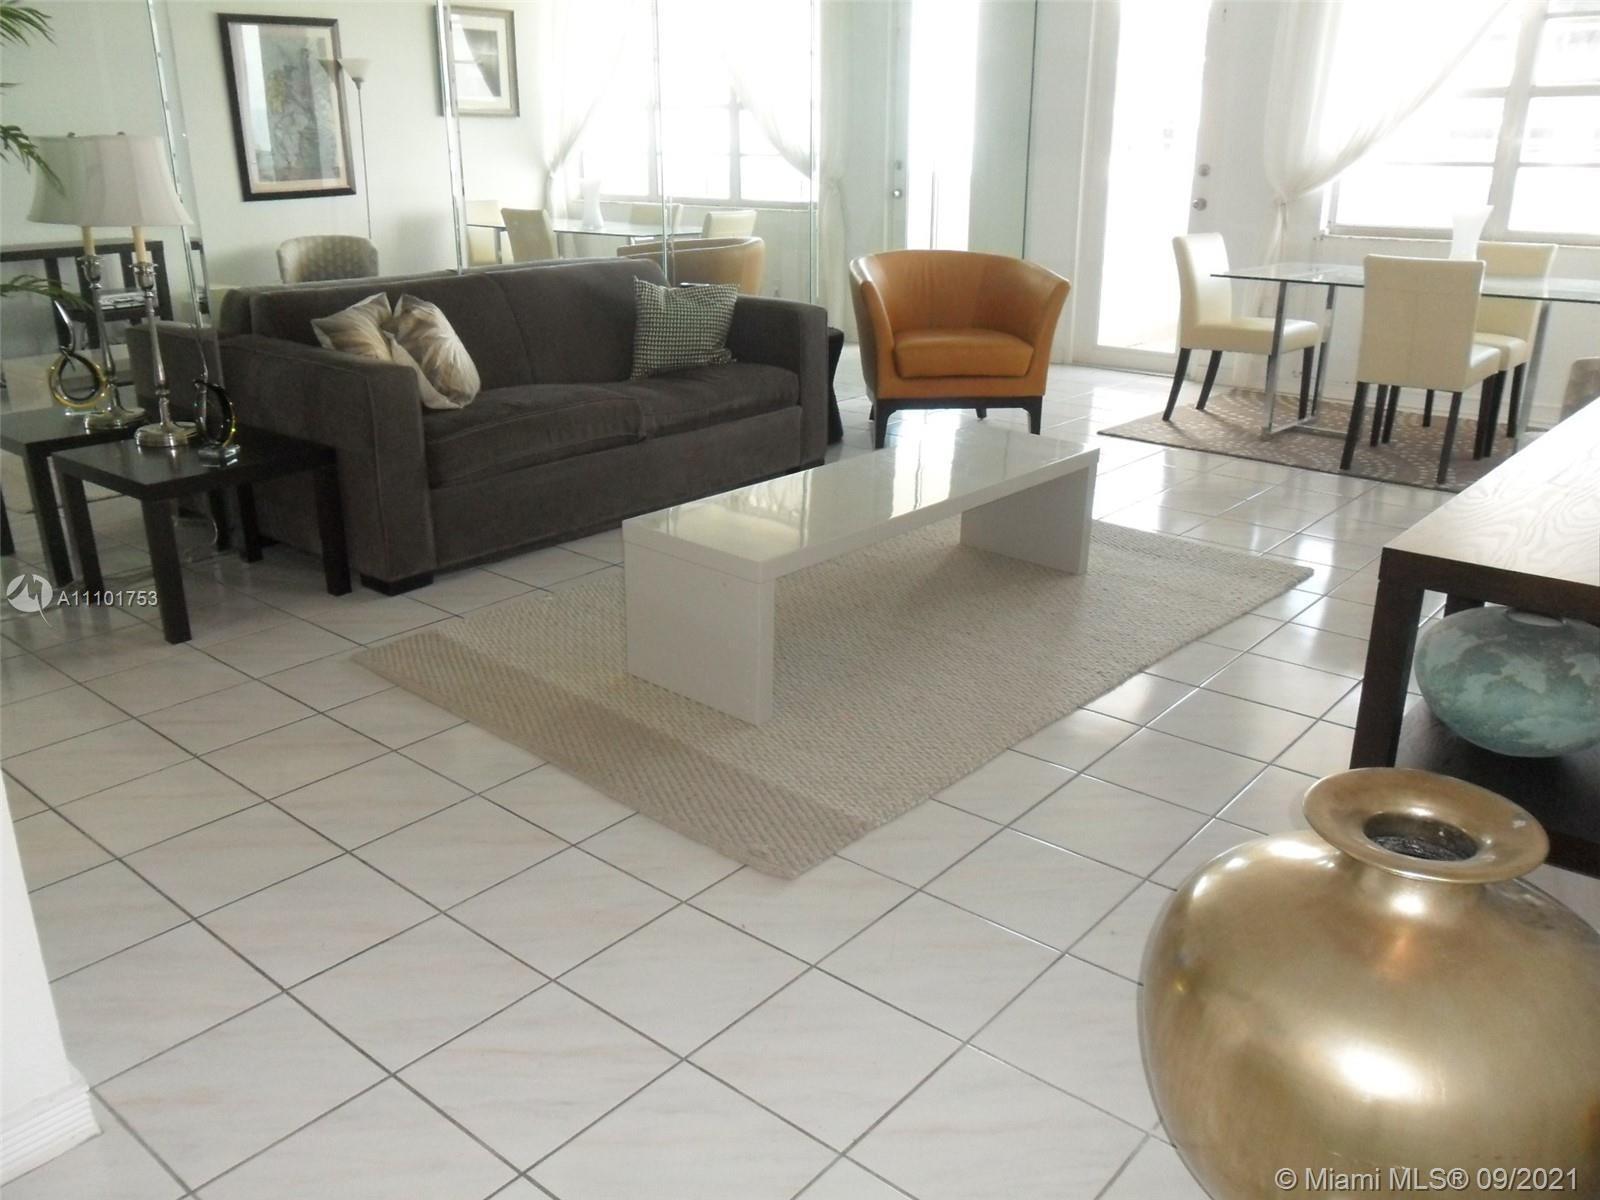 LARGE BEAUTIFUL ONE BEDROOM 1.5 BATH W/BALCONY AND OCEAN VIEW. COMPLETELY FURNISHED, EASY TO RENT, B